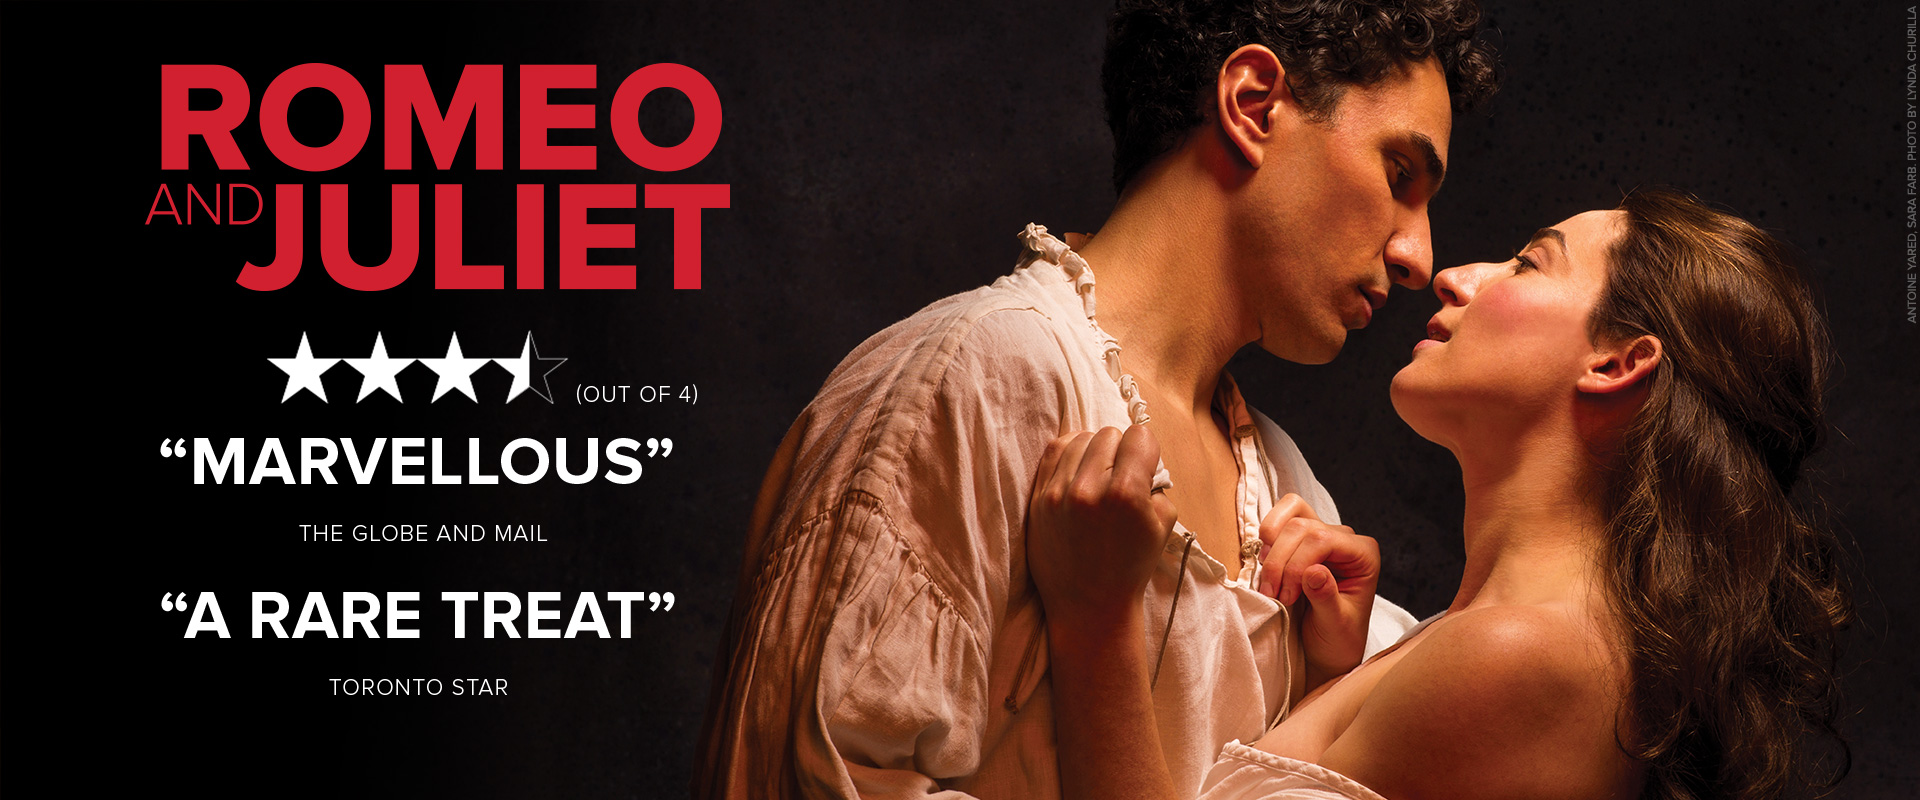 Publicity image from Romeo and Juliet